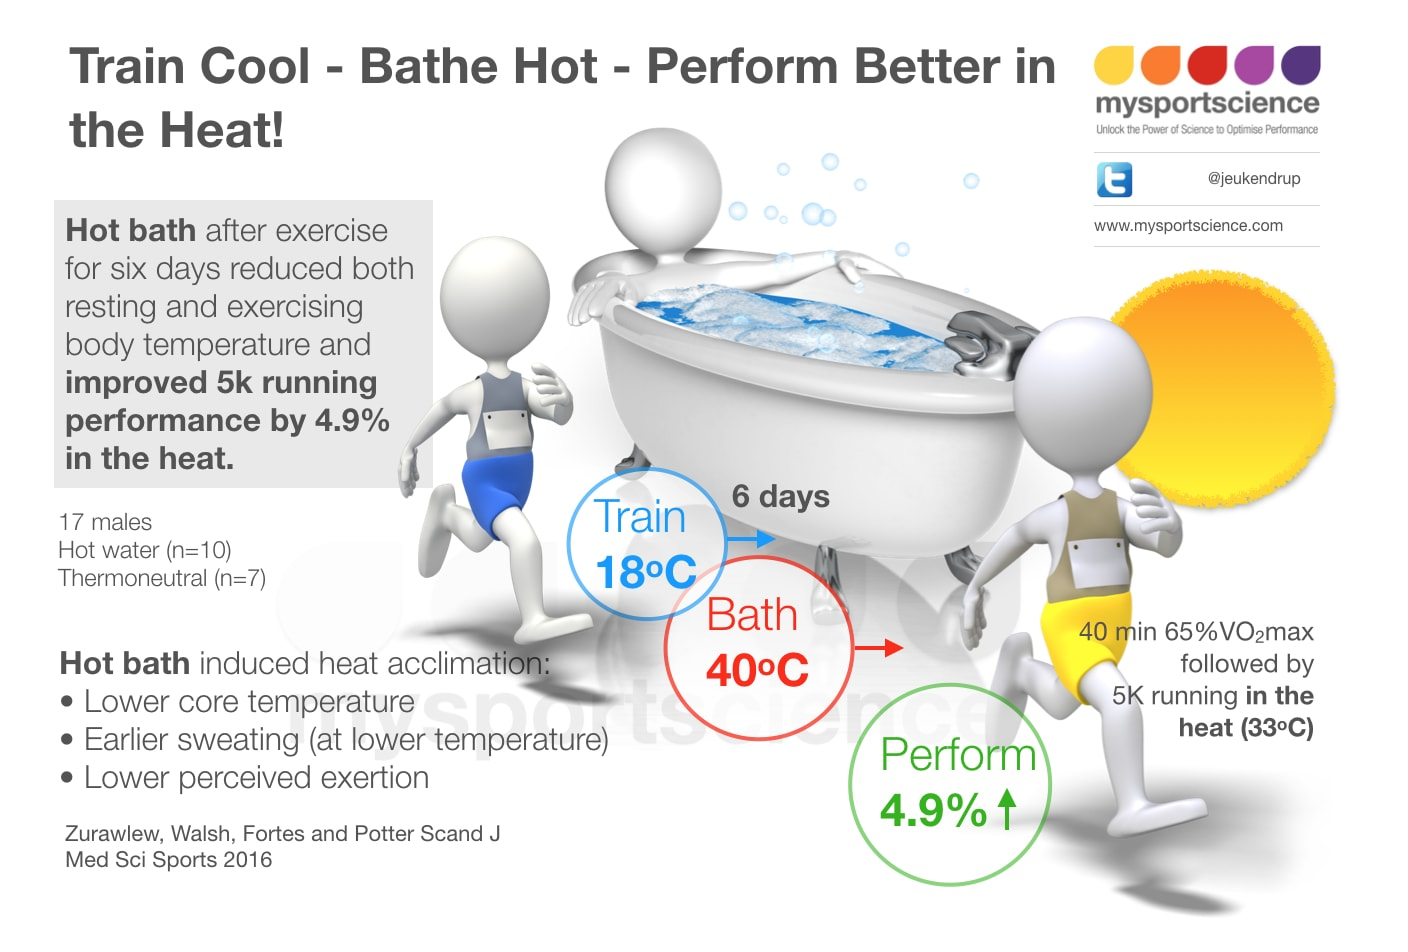 Beat the Heat – a hot bath after exercise boosts performance in the heat | Jeukendrup - Trusted sports nutrition advice & exercise science news